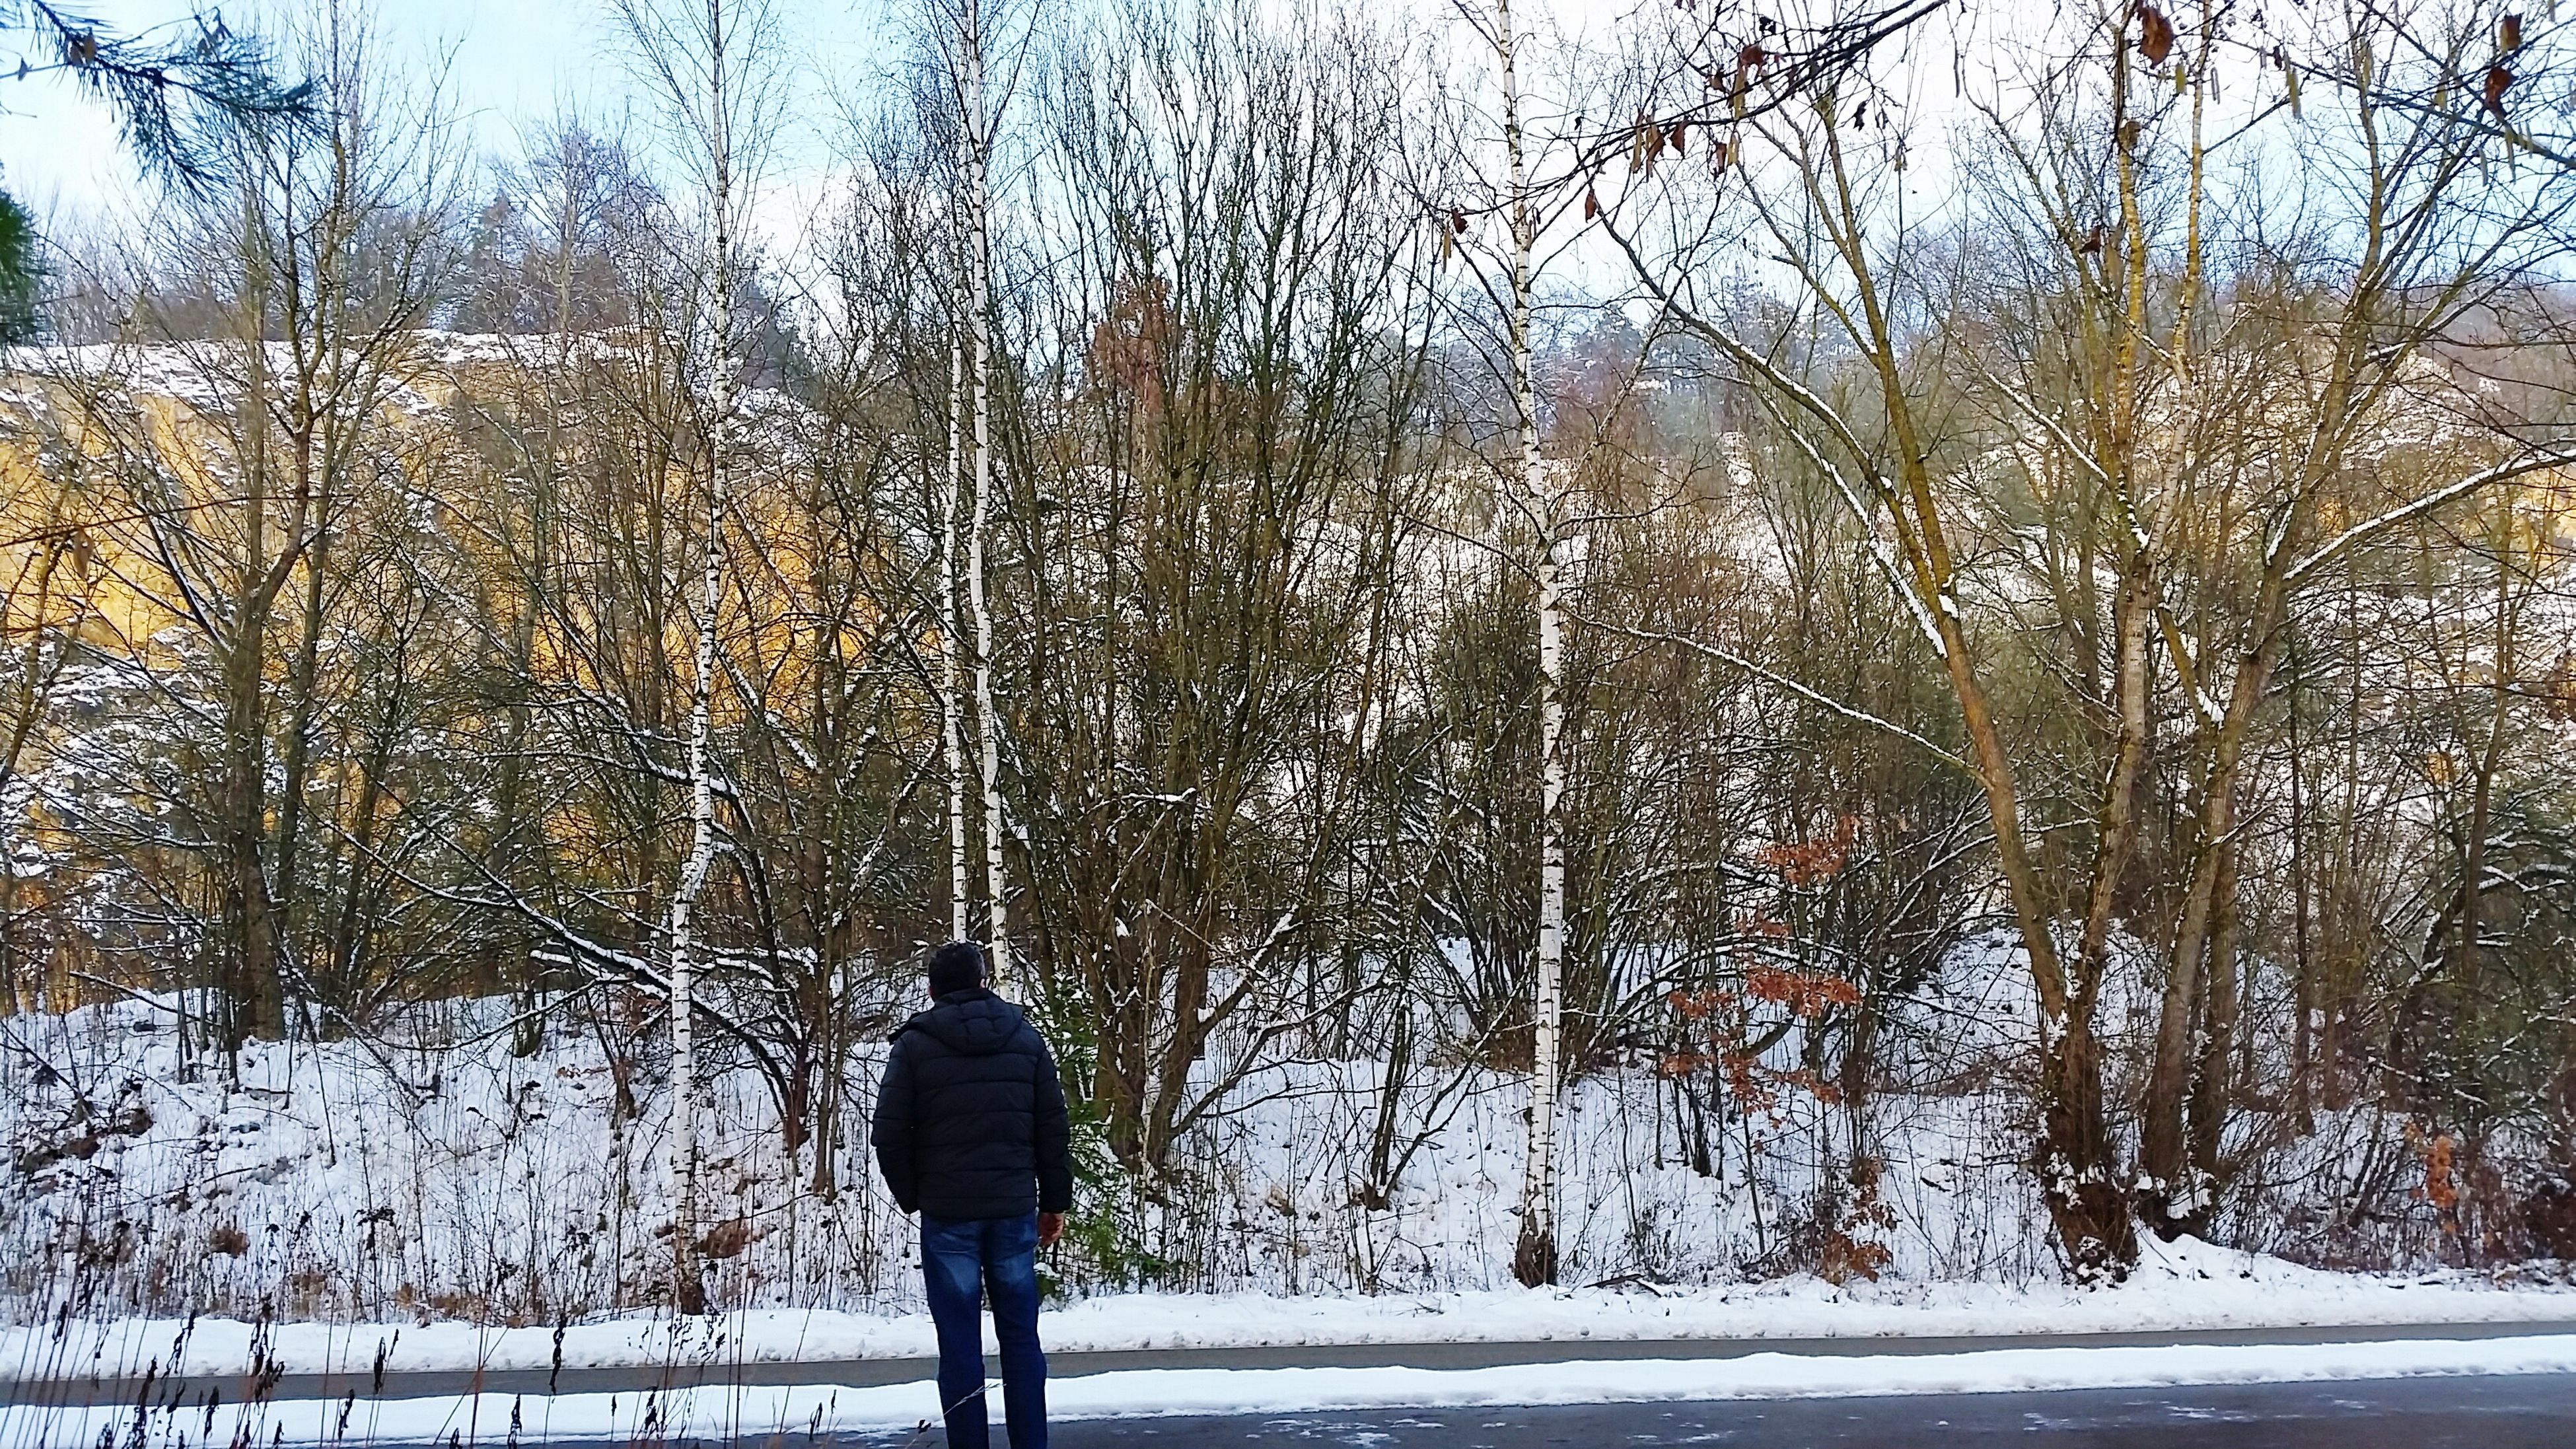 cold temperature, winter, snow, season, weather, tree, lifestyles, bare tree, covering, frozen, rear view, standing, nature, leisure activity, branch, warm clothing, outdoors, tranquility